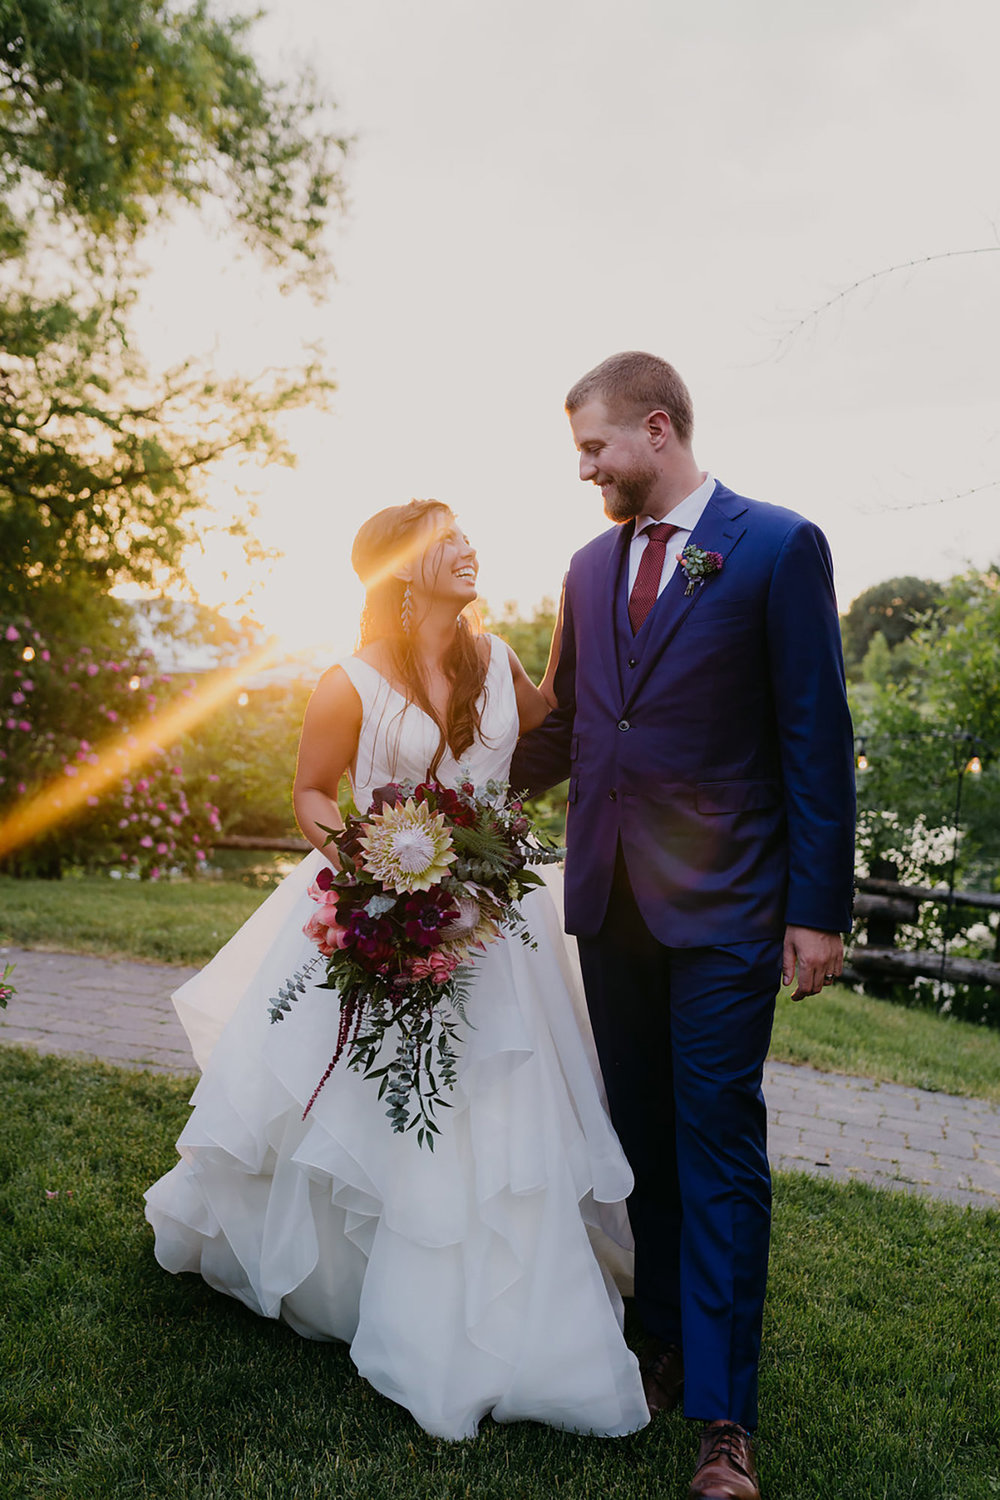 Kurtz-Orchards-Wedding-Niagara-wedding-Vineyard-Bride-Photography-by-Kayla-Rocca-047.JPG